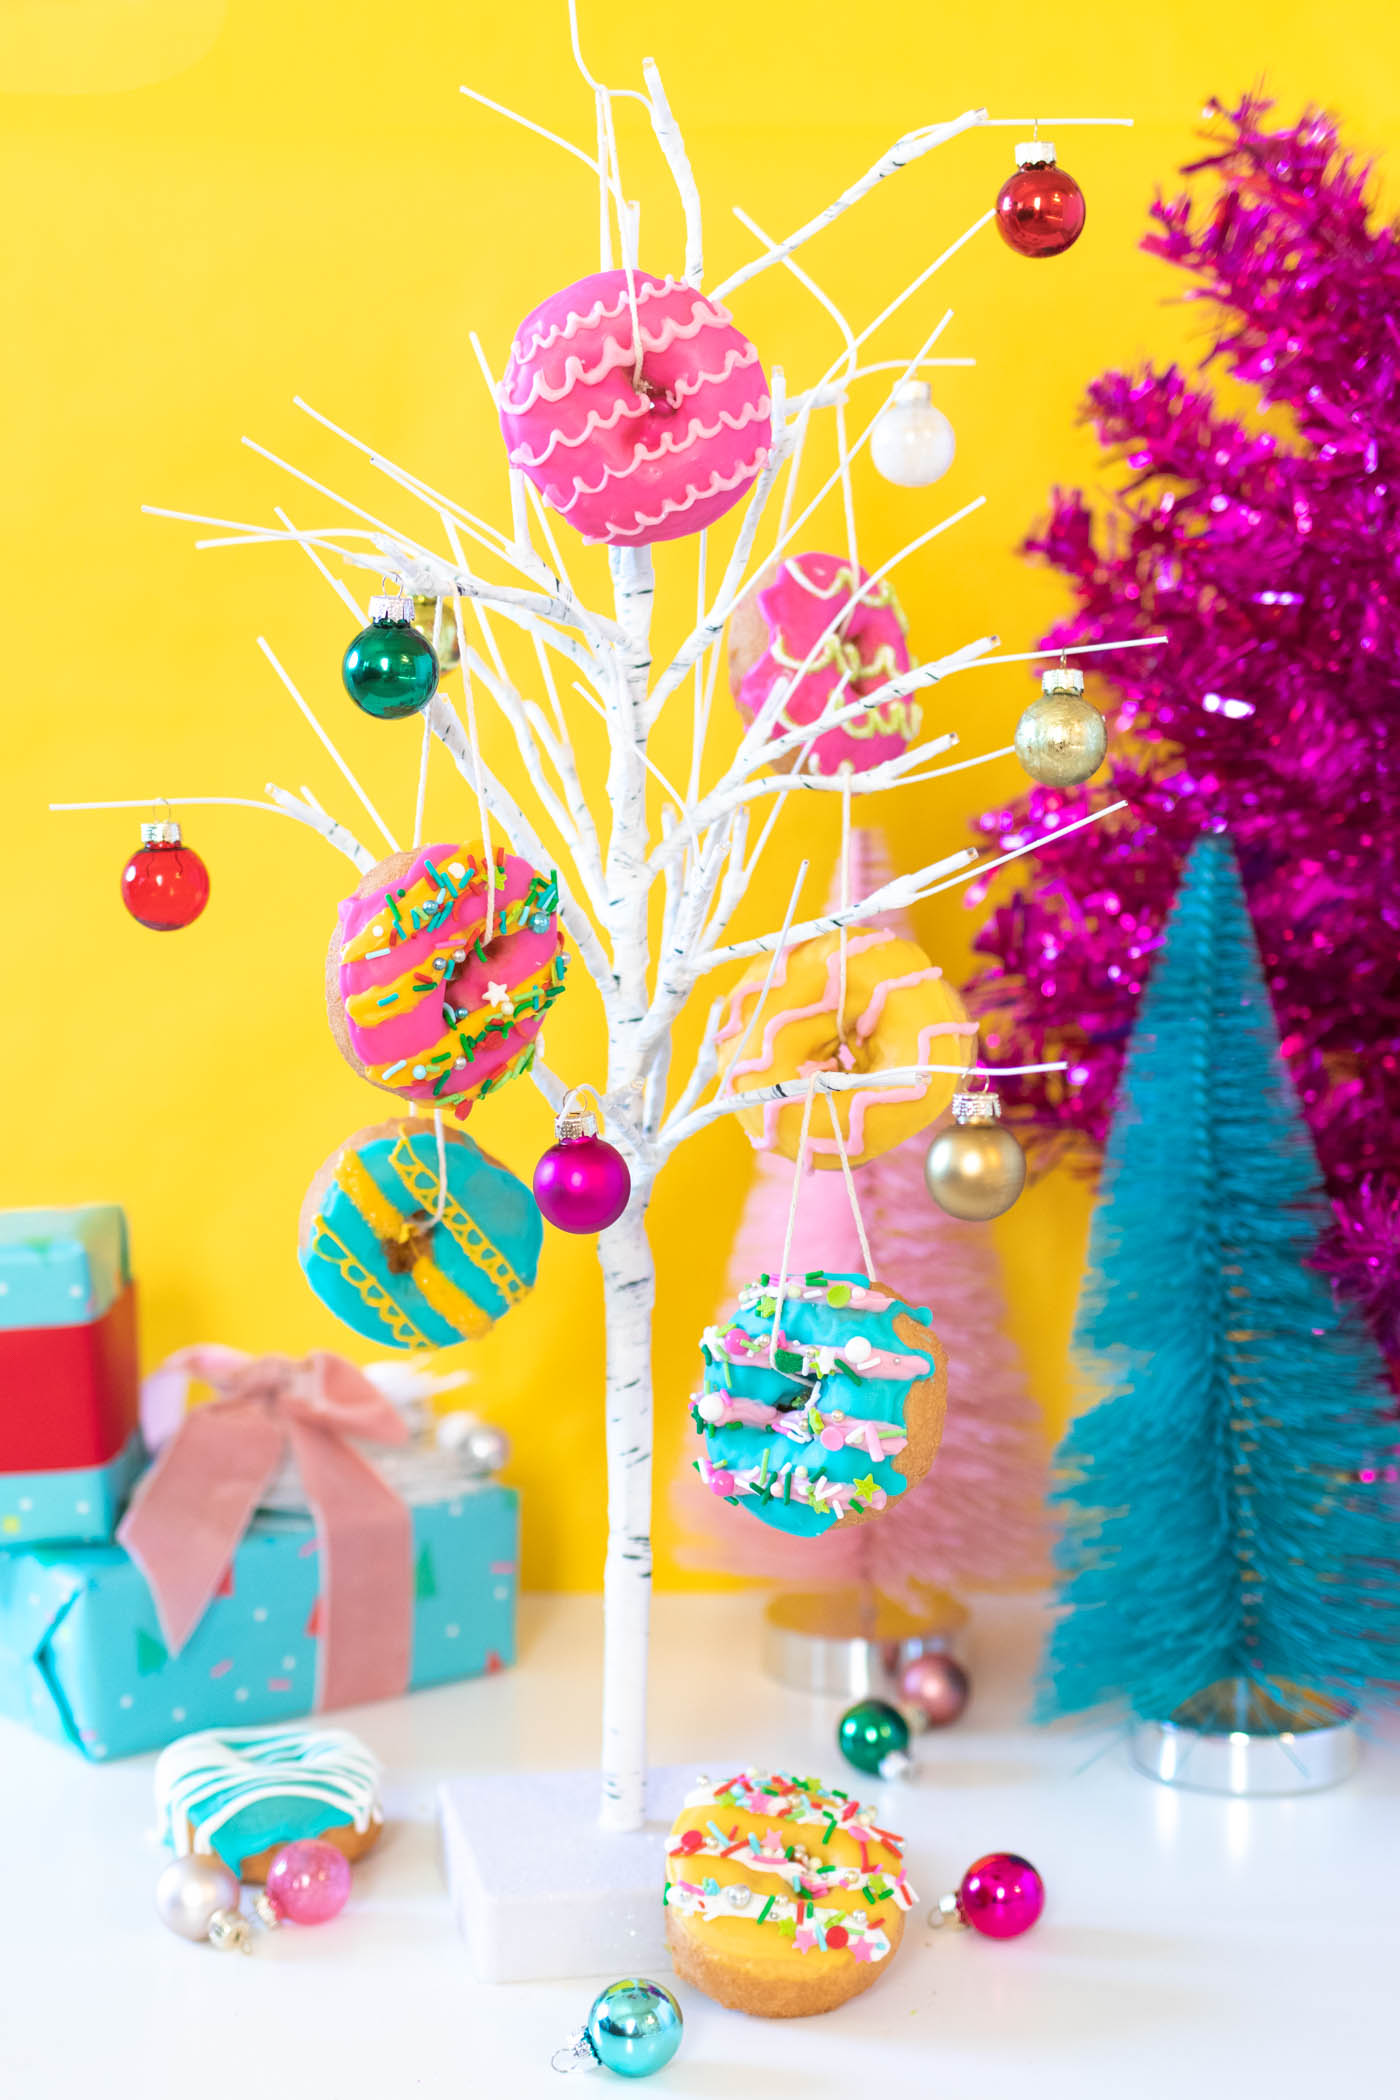 Edible Donut Ornaments // Decorate a Christmas tree or branches with these colorful edible donut ornaments! Display holiday donuts on a tree for a fun party treat or just for a fun weekend project #donuts #holidaydesserts #christmas #christmasfood #christmasparty #partyfood #donutdecorating #candymelts #christmasdecor #diychristmas